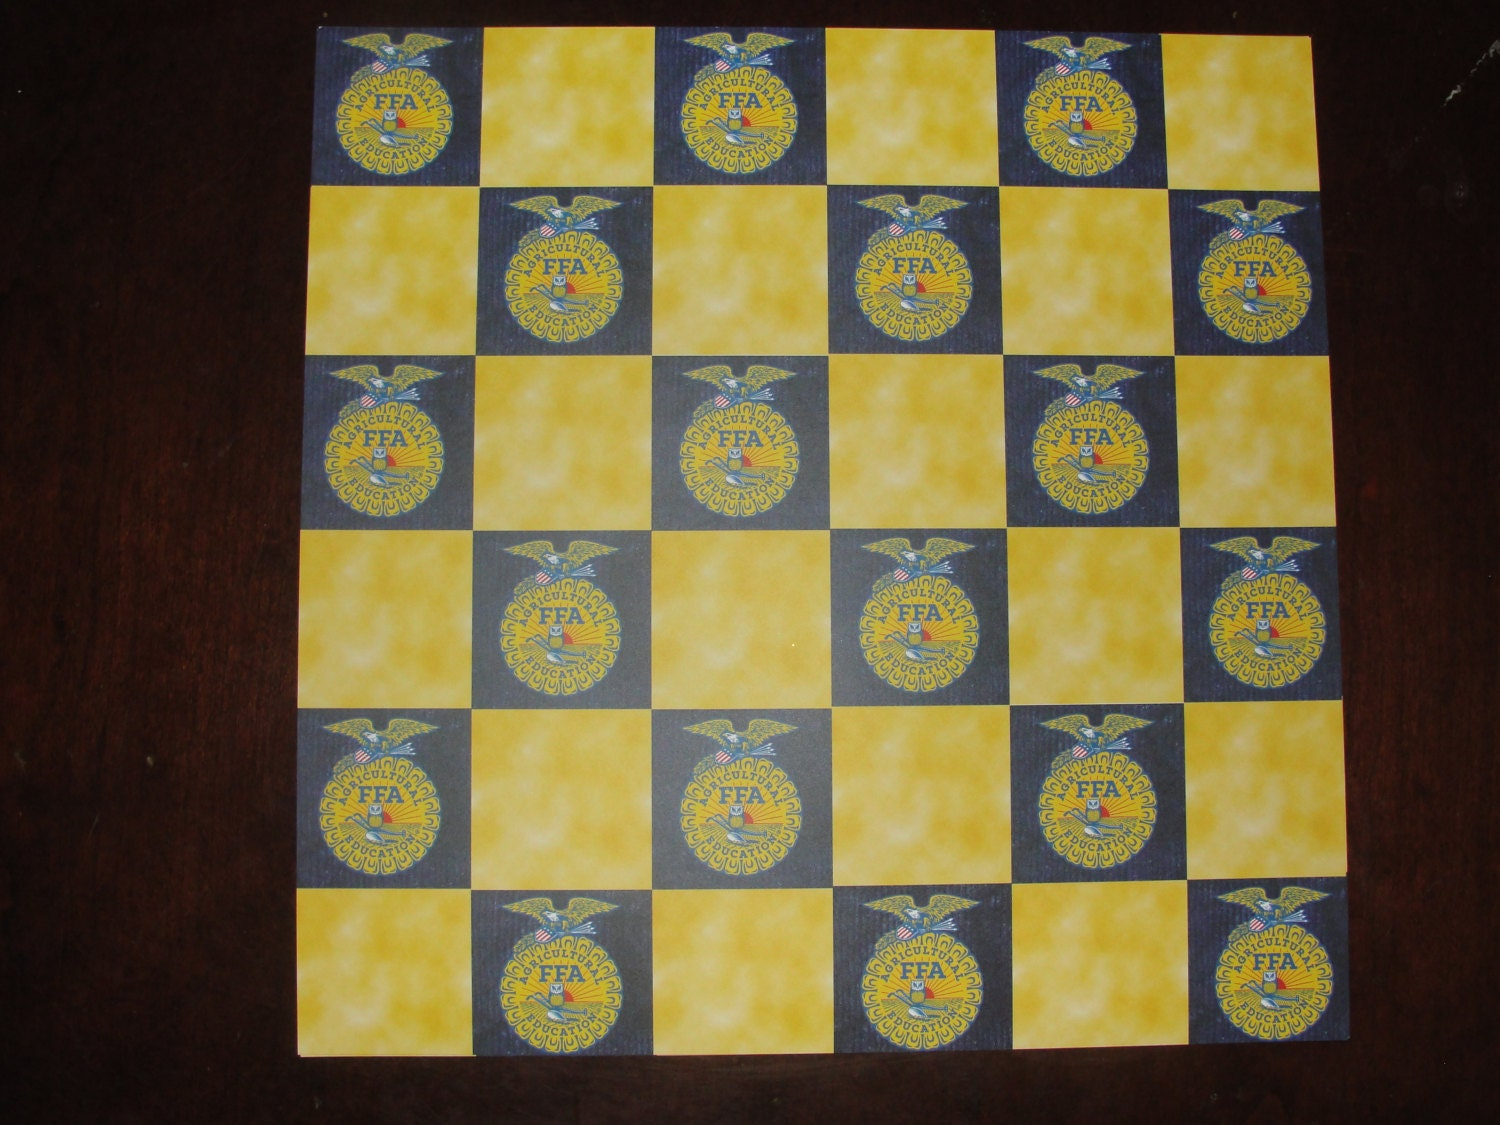 12x12 Ffa Checker Board Pattern Scrapbook Paper Etsy